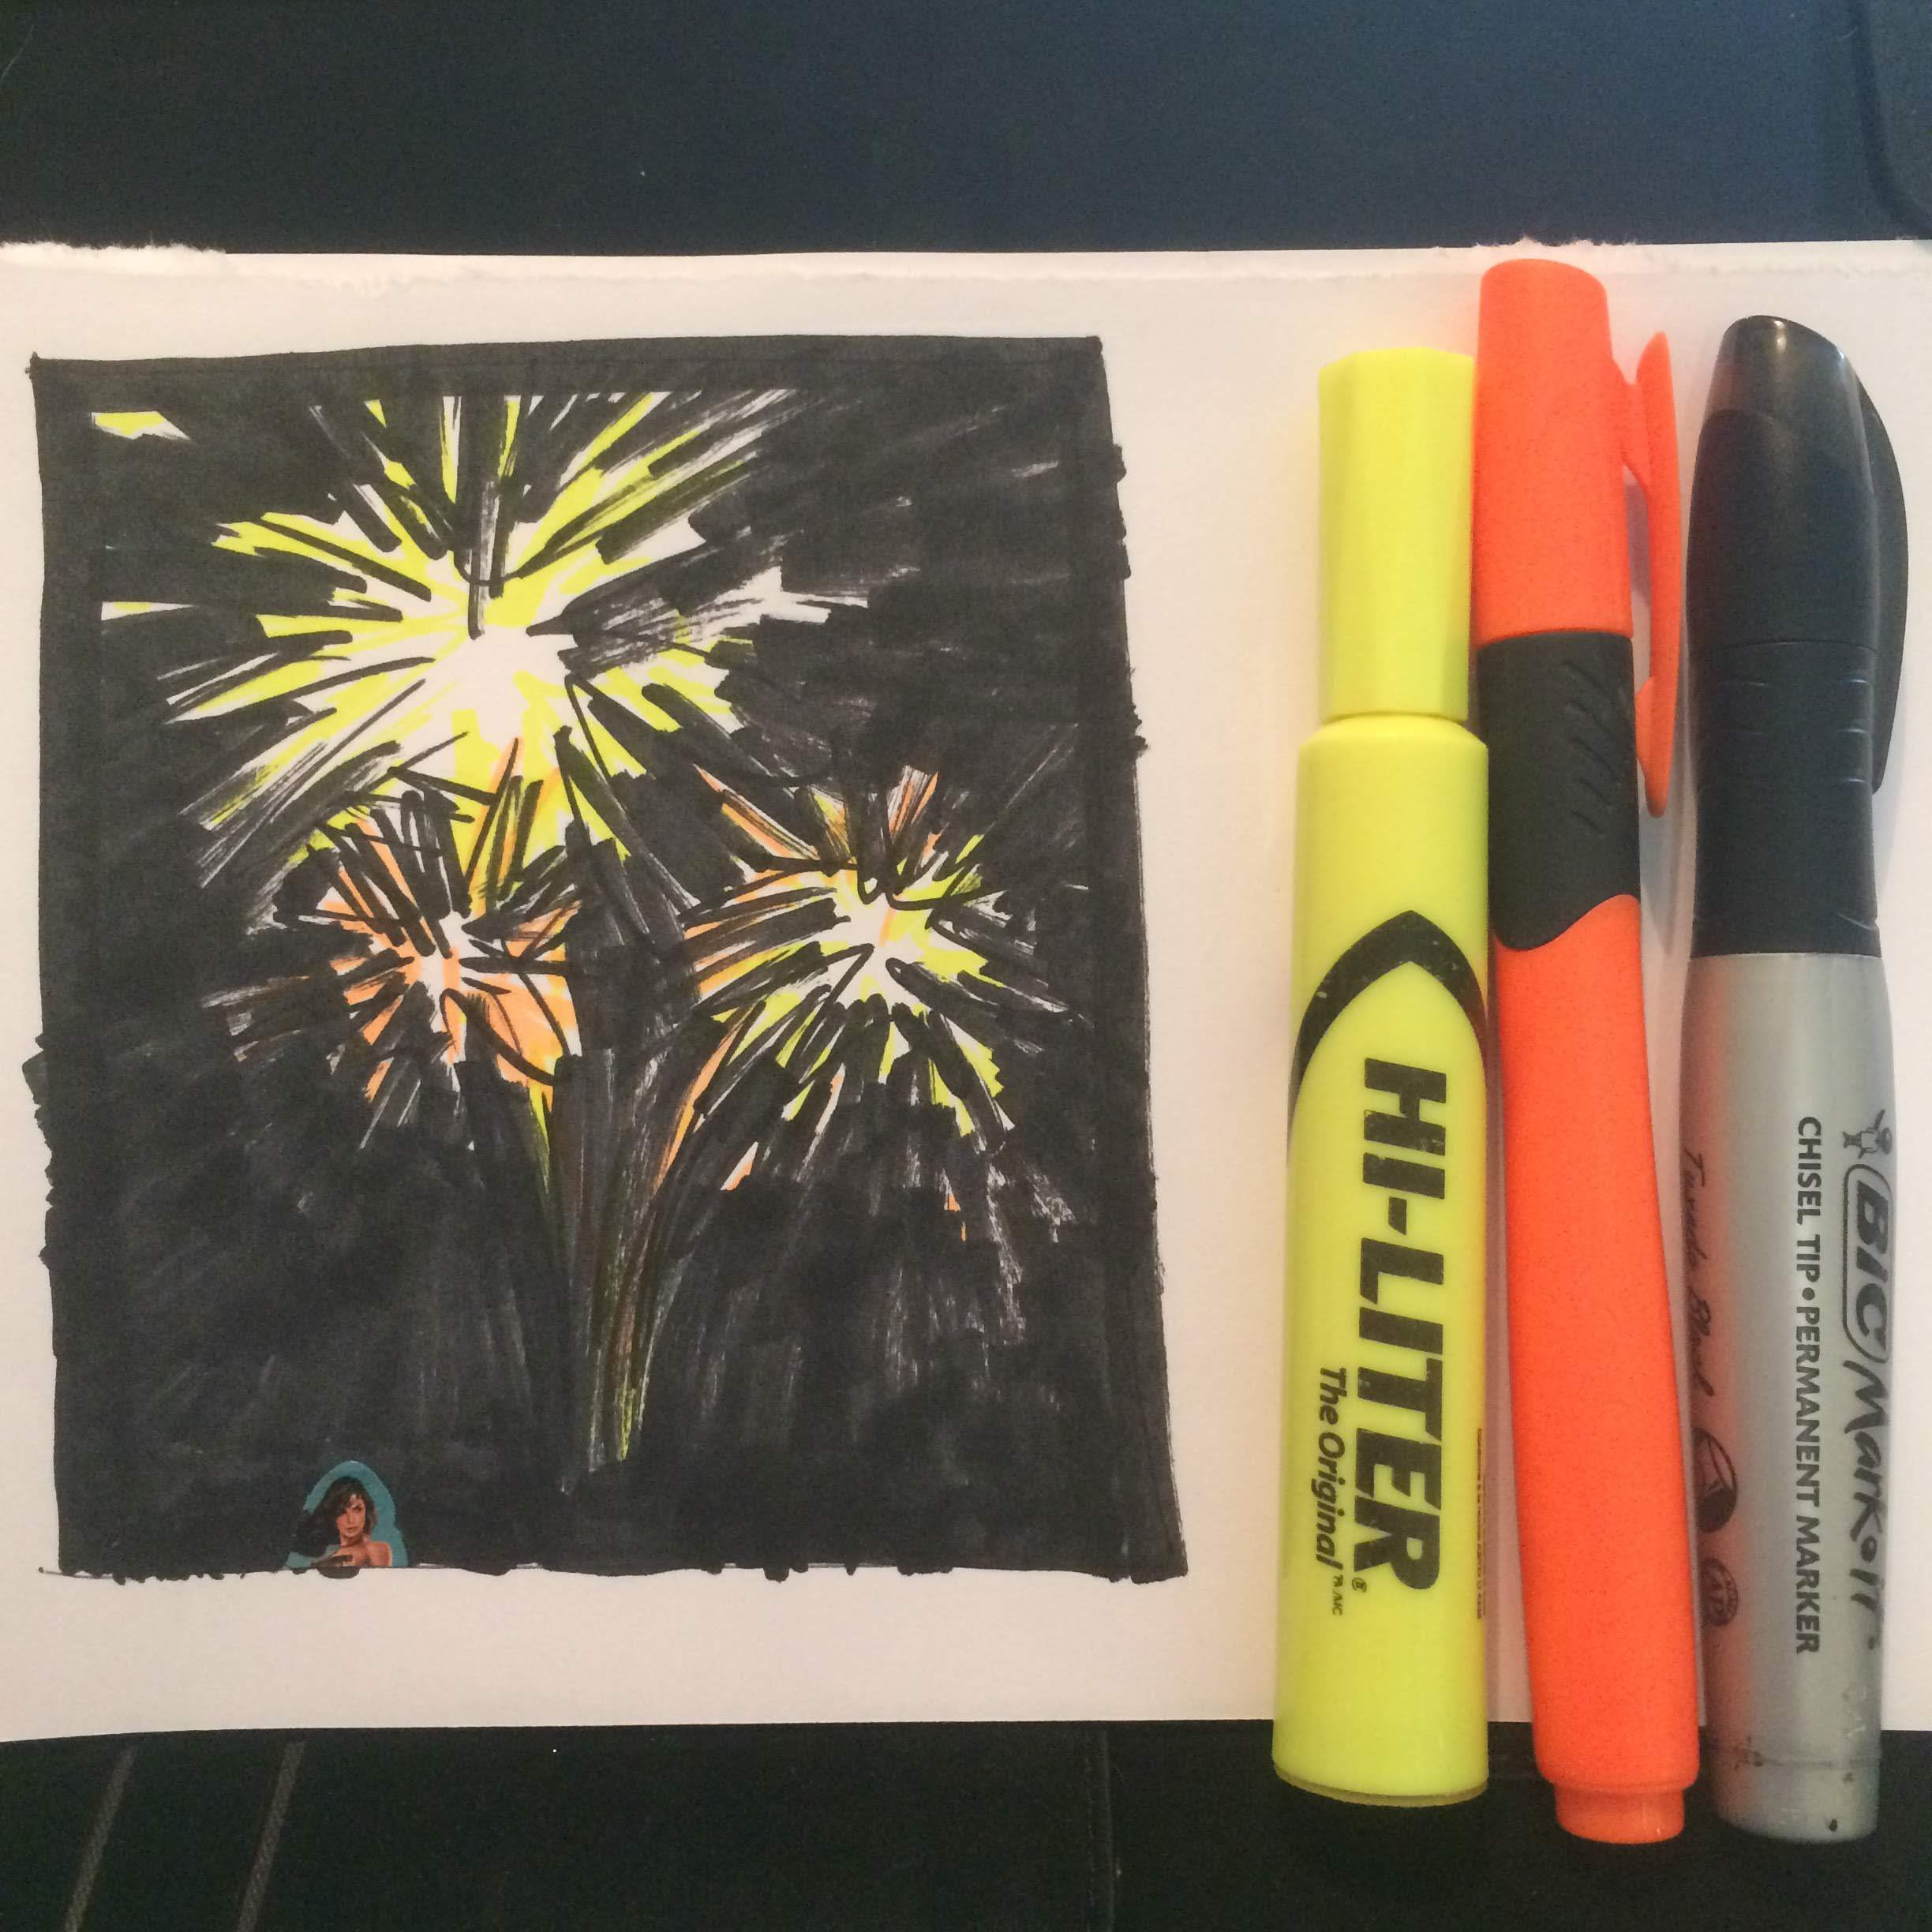 308. May 28, 2018 - Fireworks